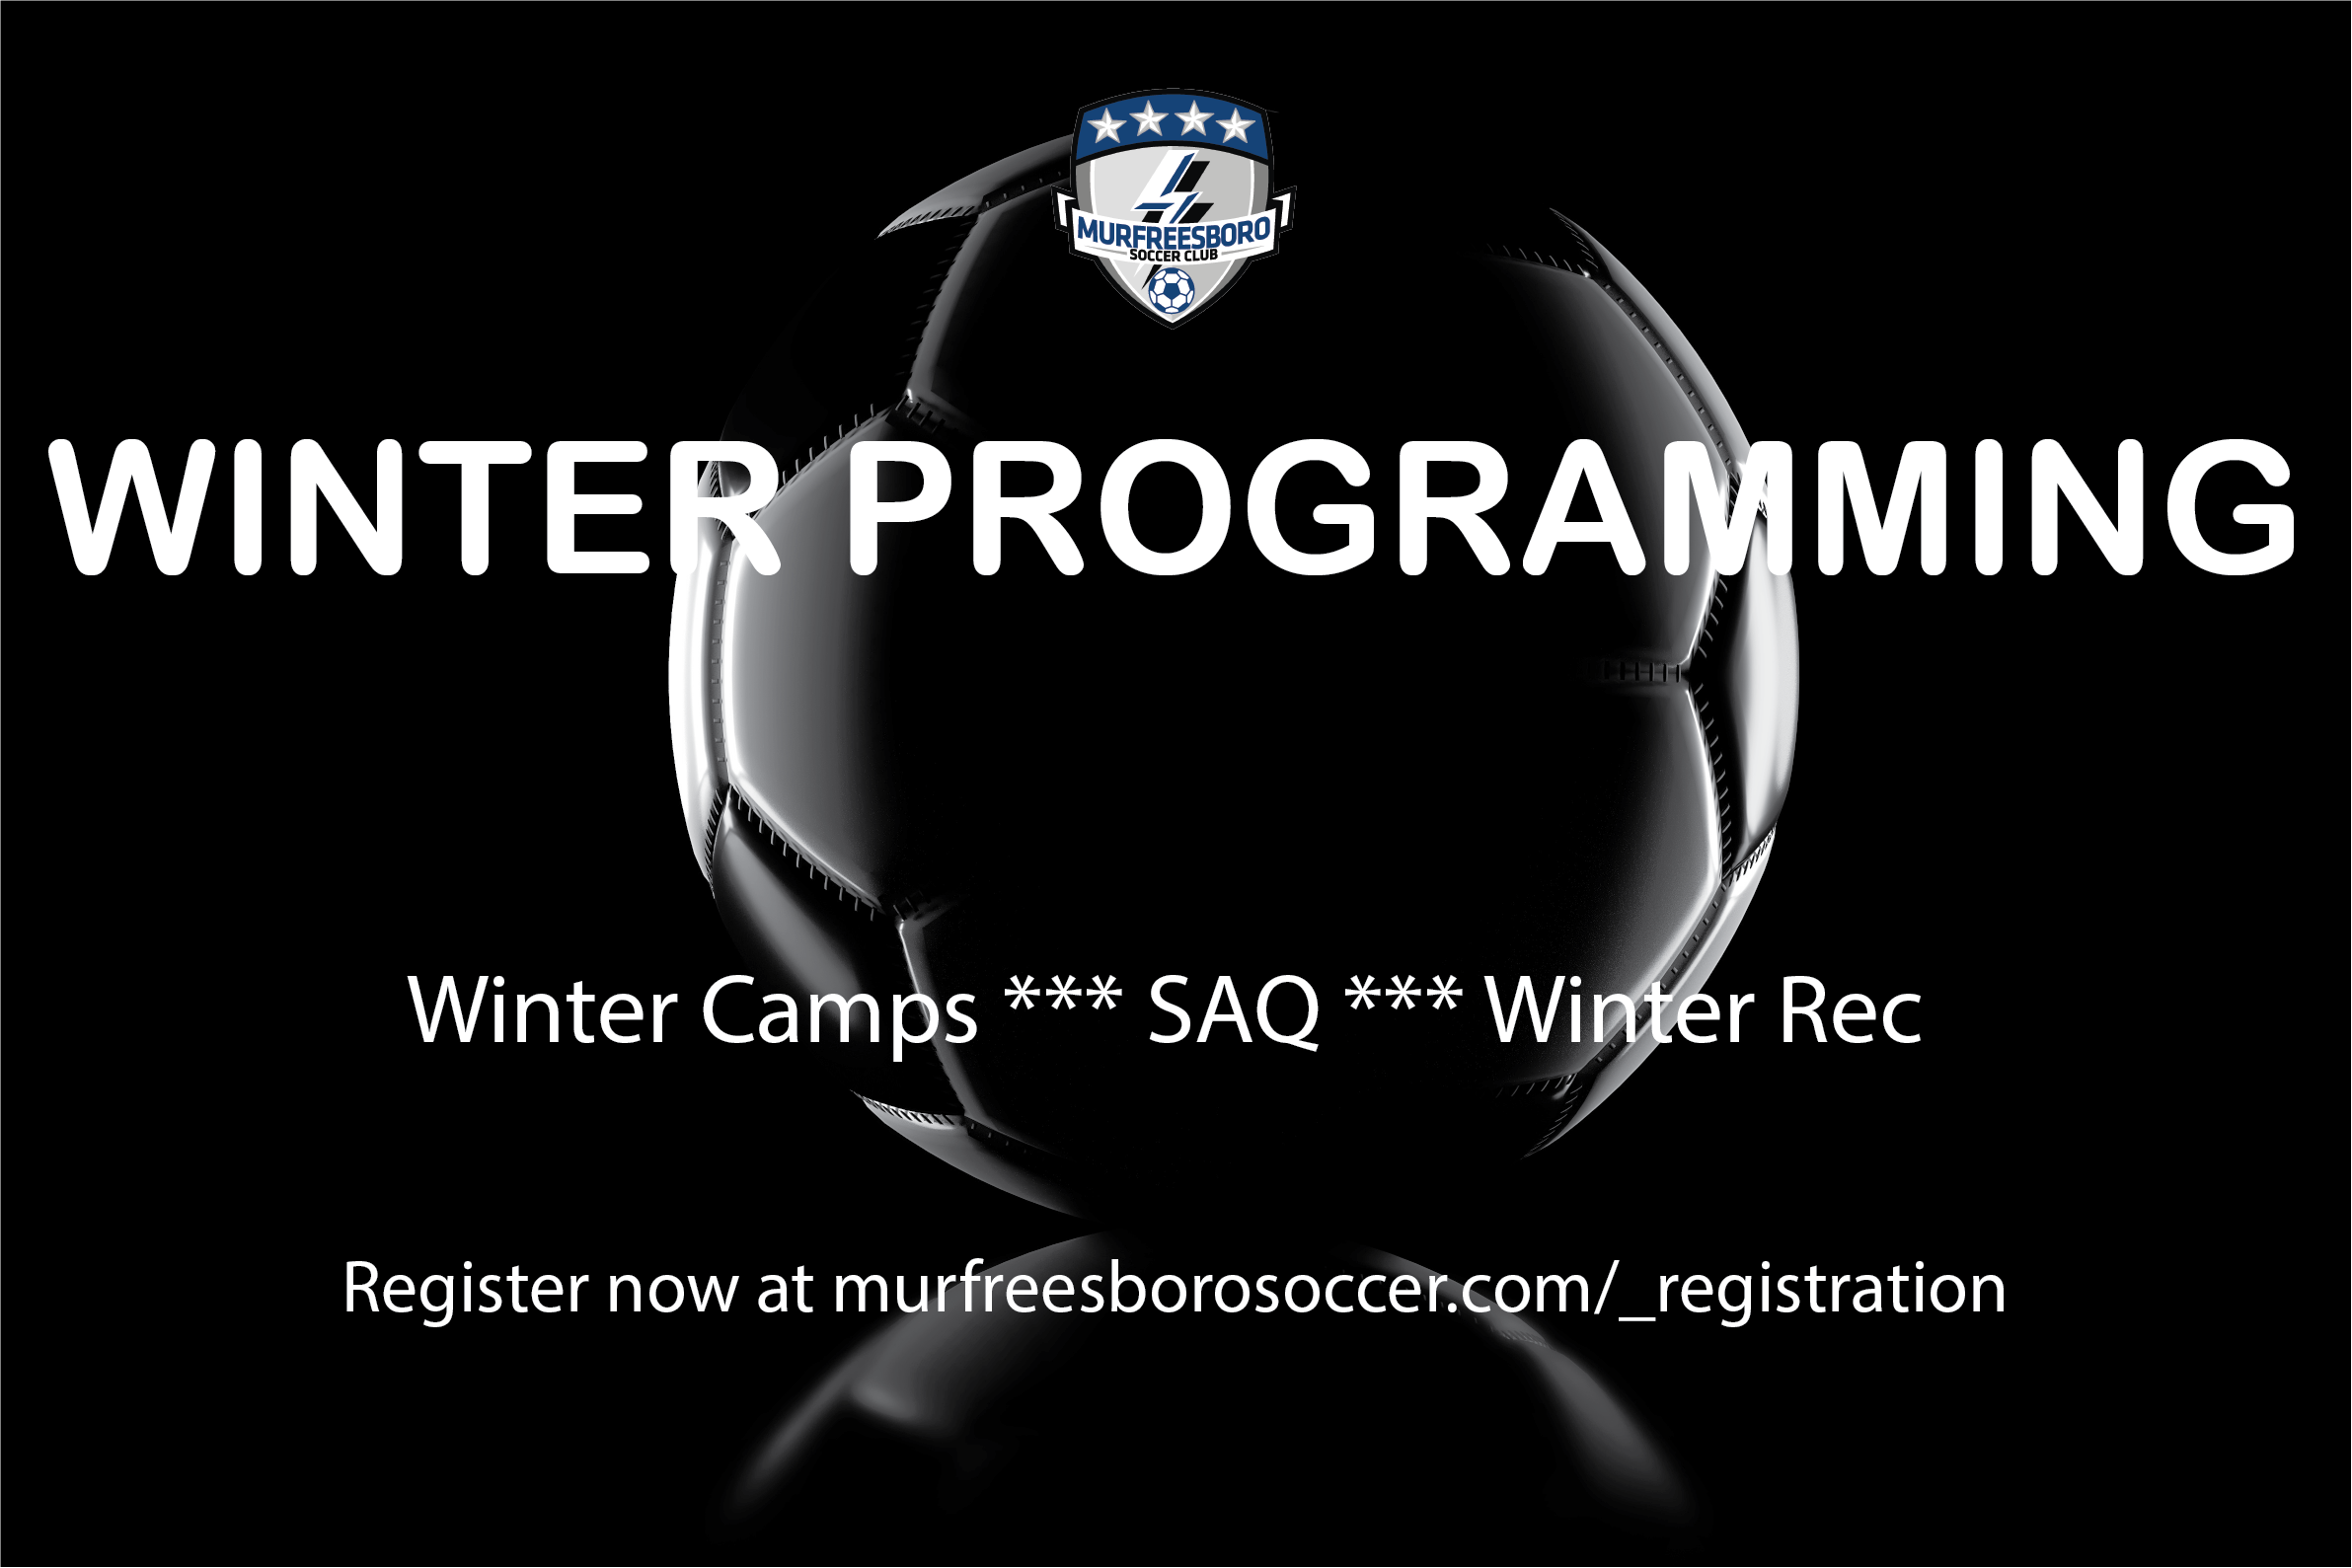 Winter Programming